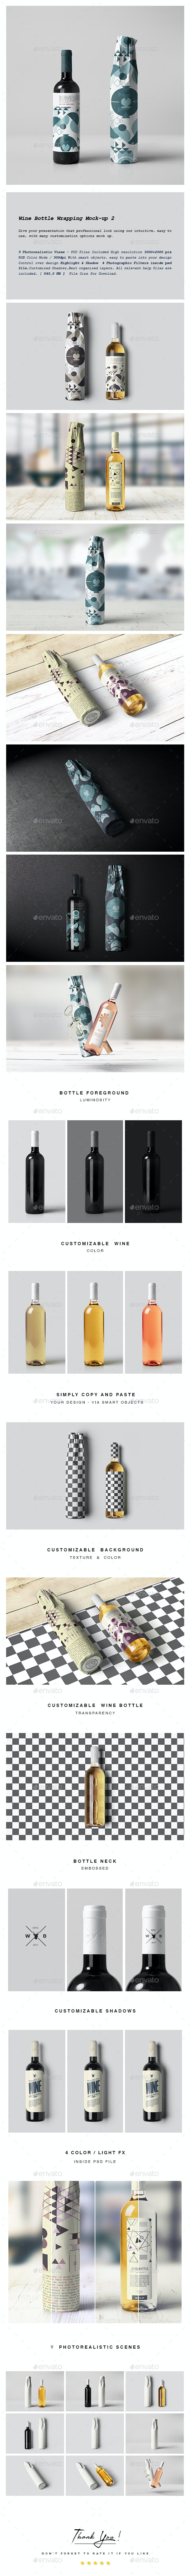 Wine Bottle Wrapping Mock-up 2 - Food and Drink Packaging